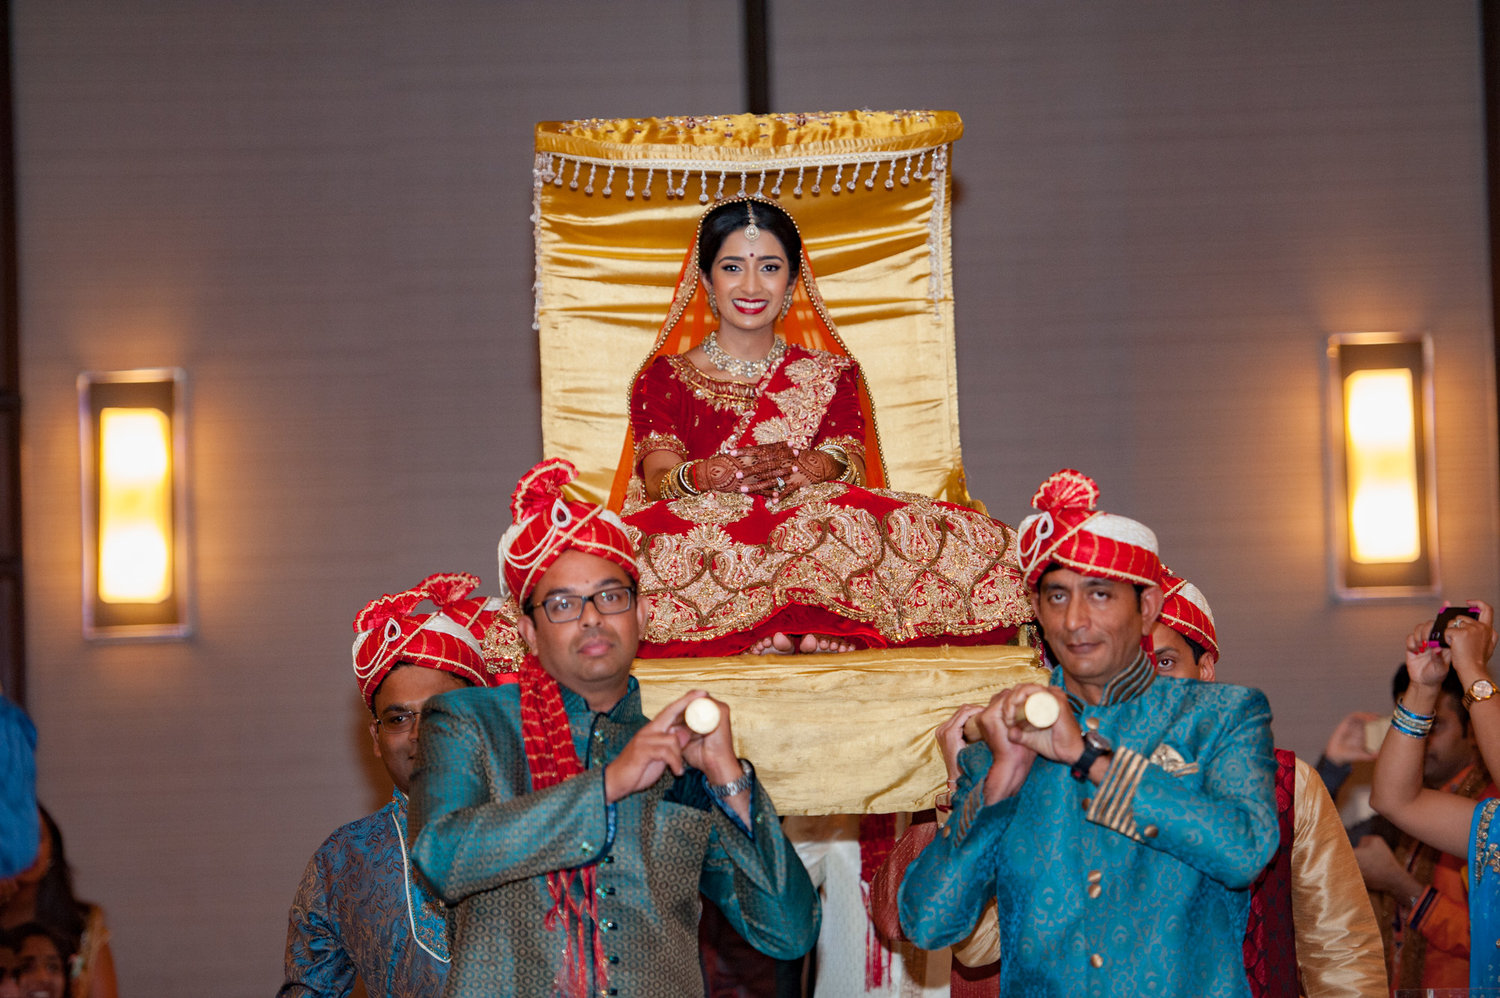 jonathan-mcphail-photography-brooklyn-new-york-nyc-weddings-wedding-photographer-indian-wedding-3614.jpg